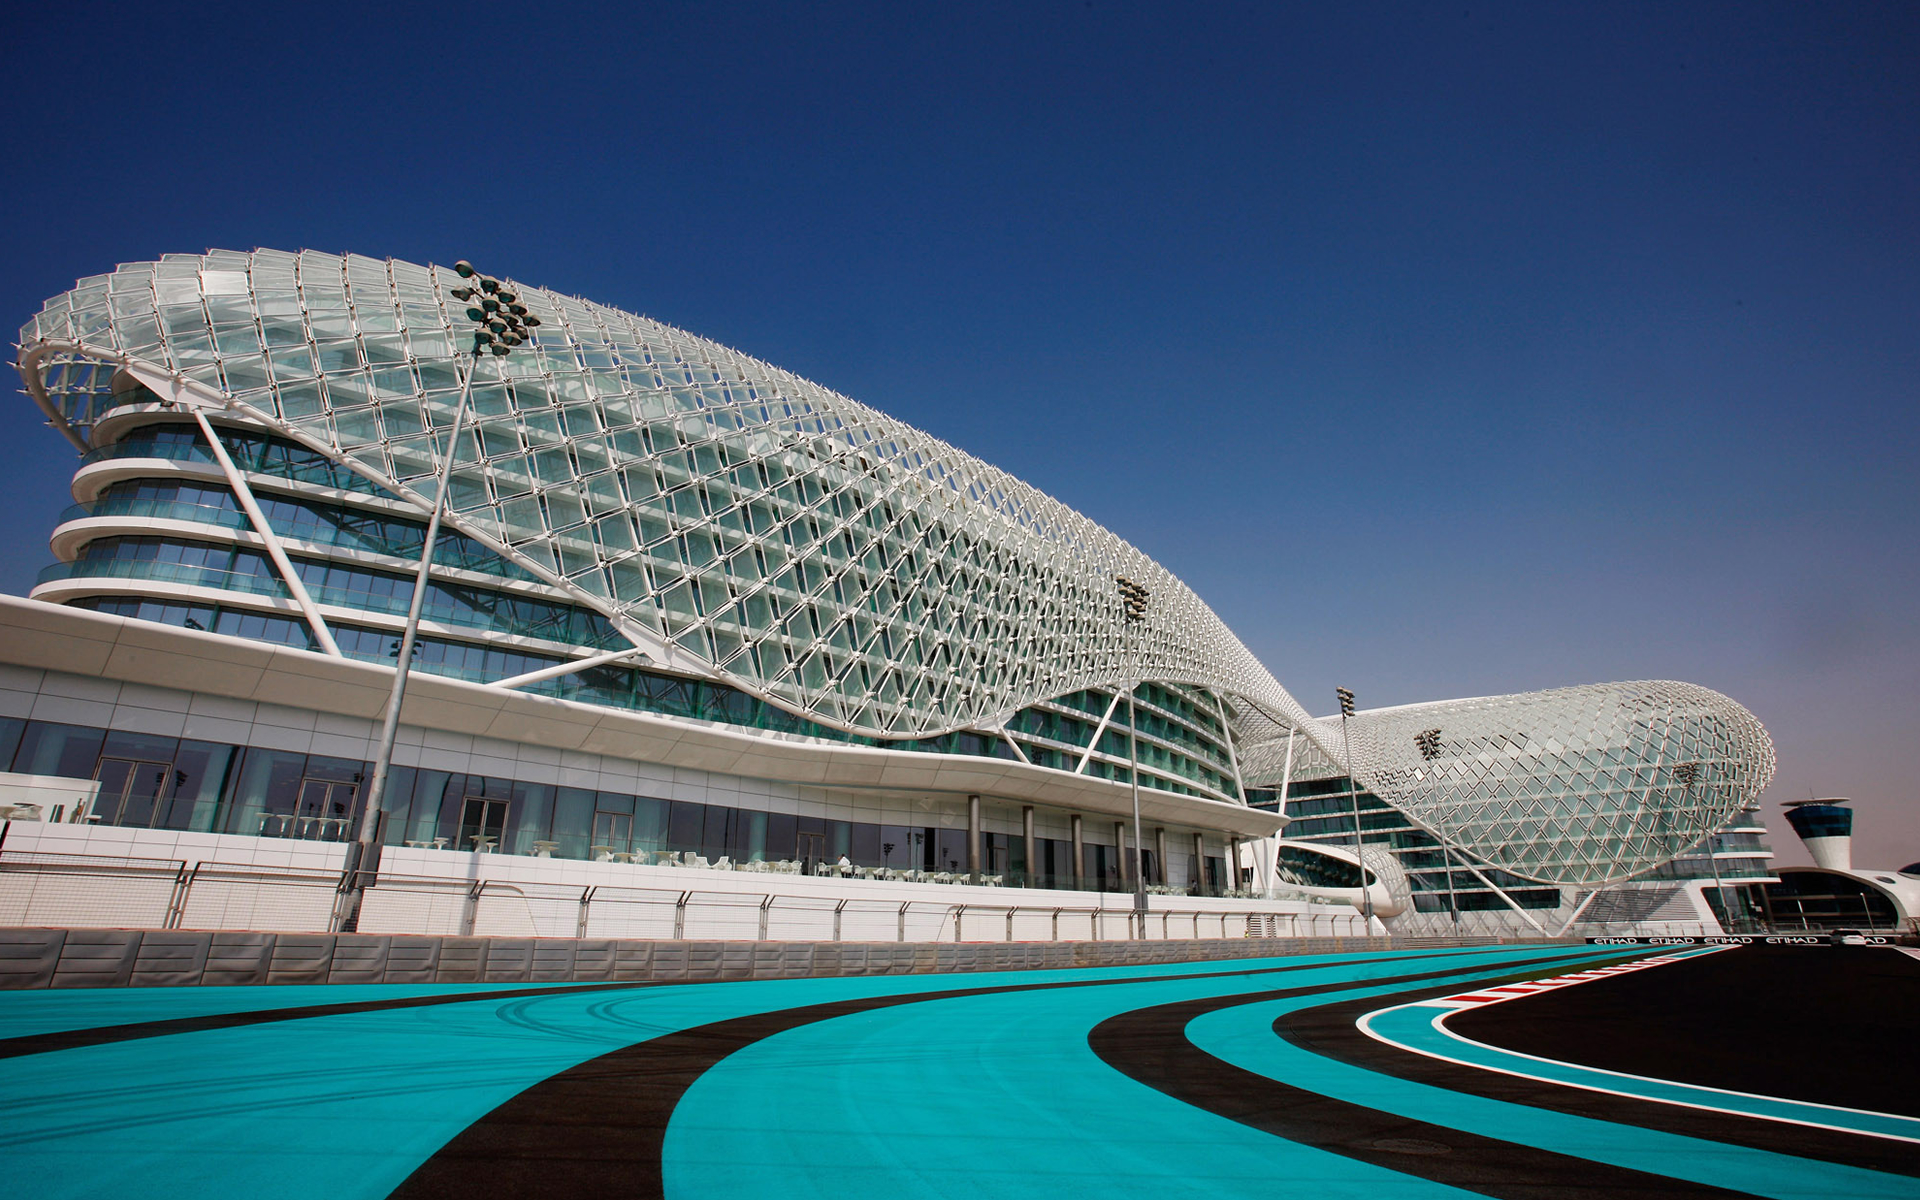 Abu Dhabi Grand Prix Tickets, Hospitality & Travel Packages